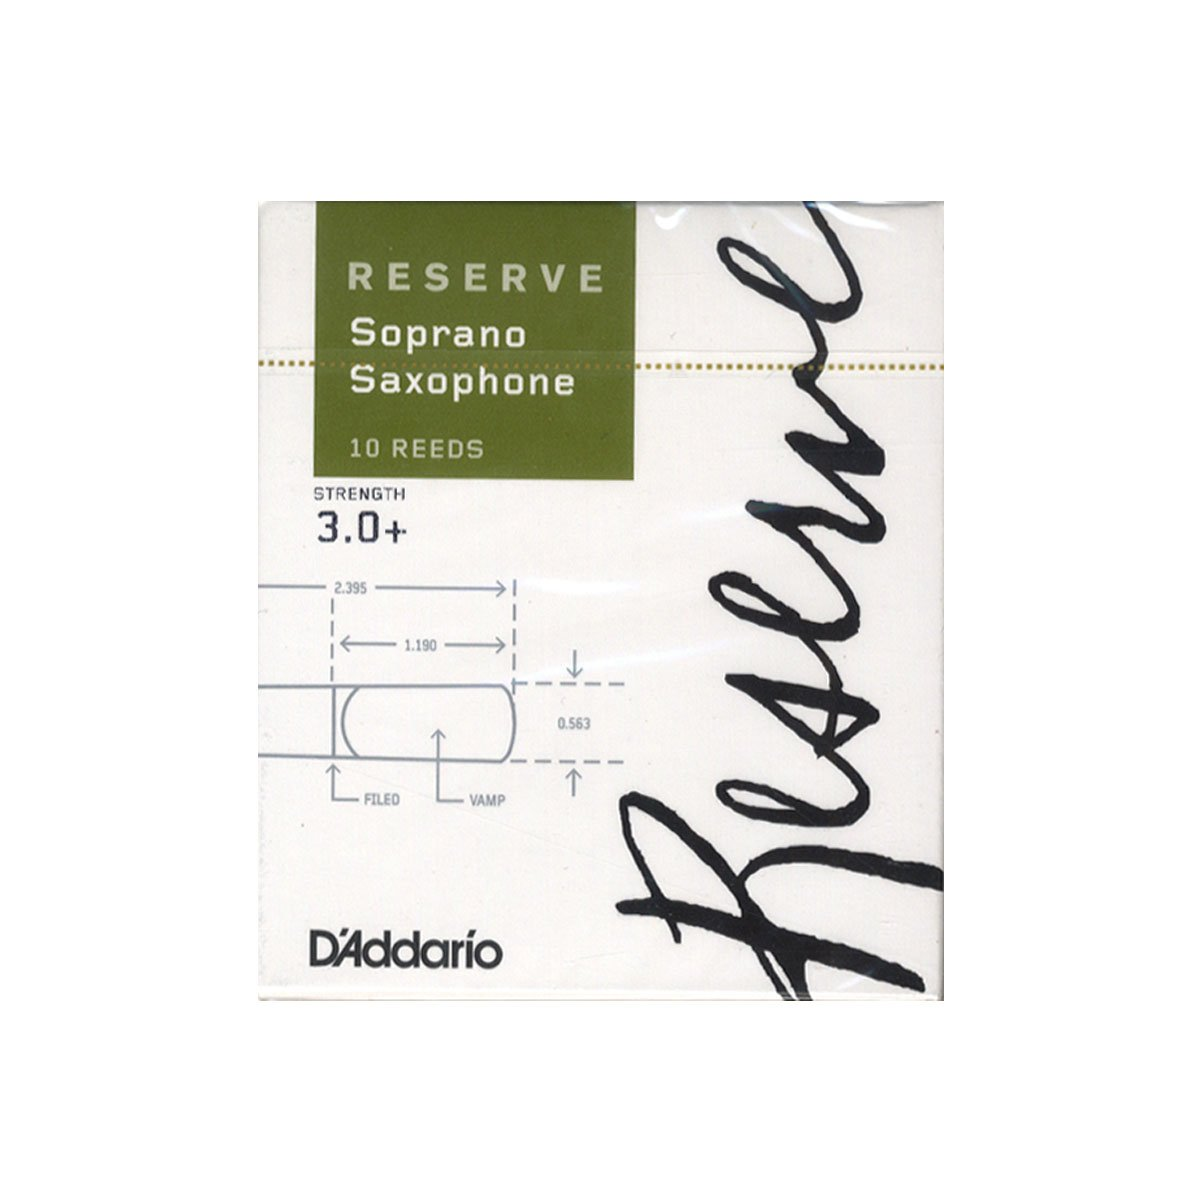 D'Addario Reserve Soprano Saxophone Reeds, Strength 3.0+,10-Pack